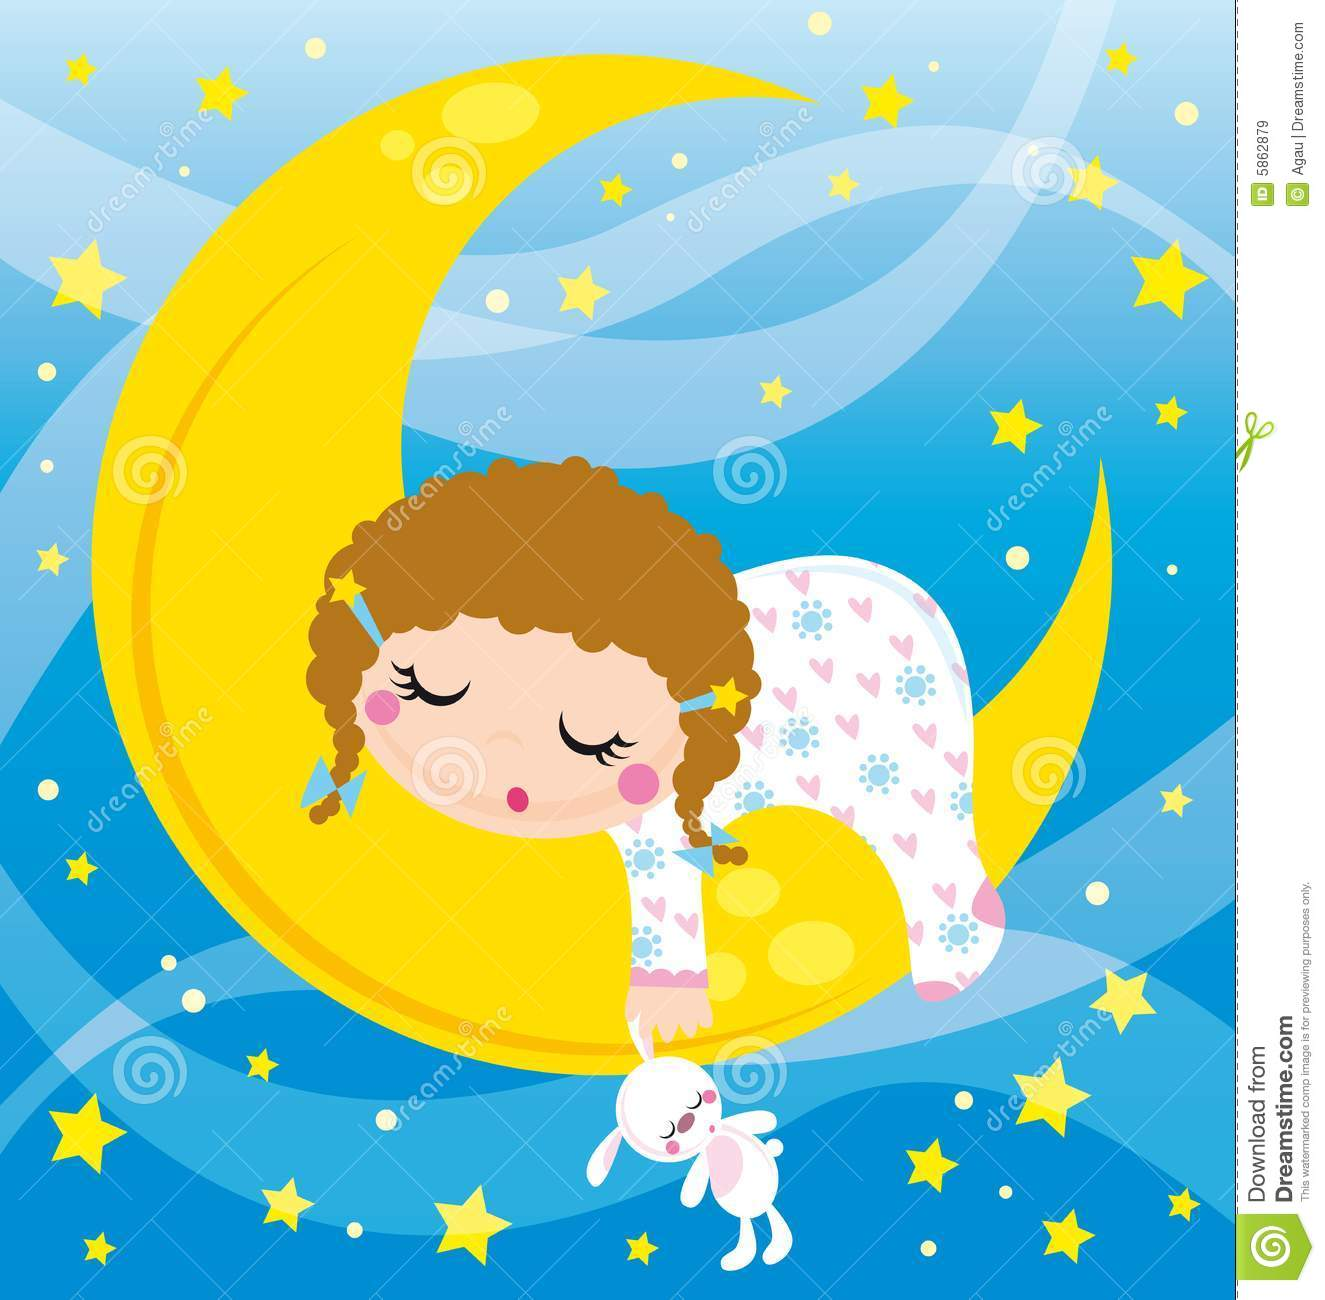 Girl Baby Shower Wallpaper Baby Sleeping Royalty Free Stock Images Image 5862879